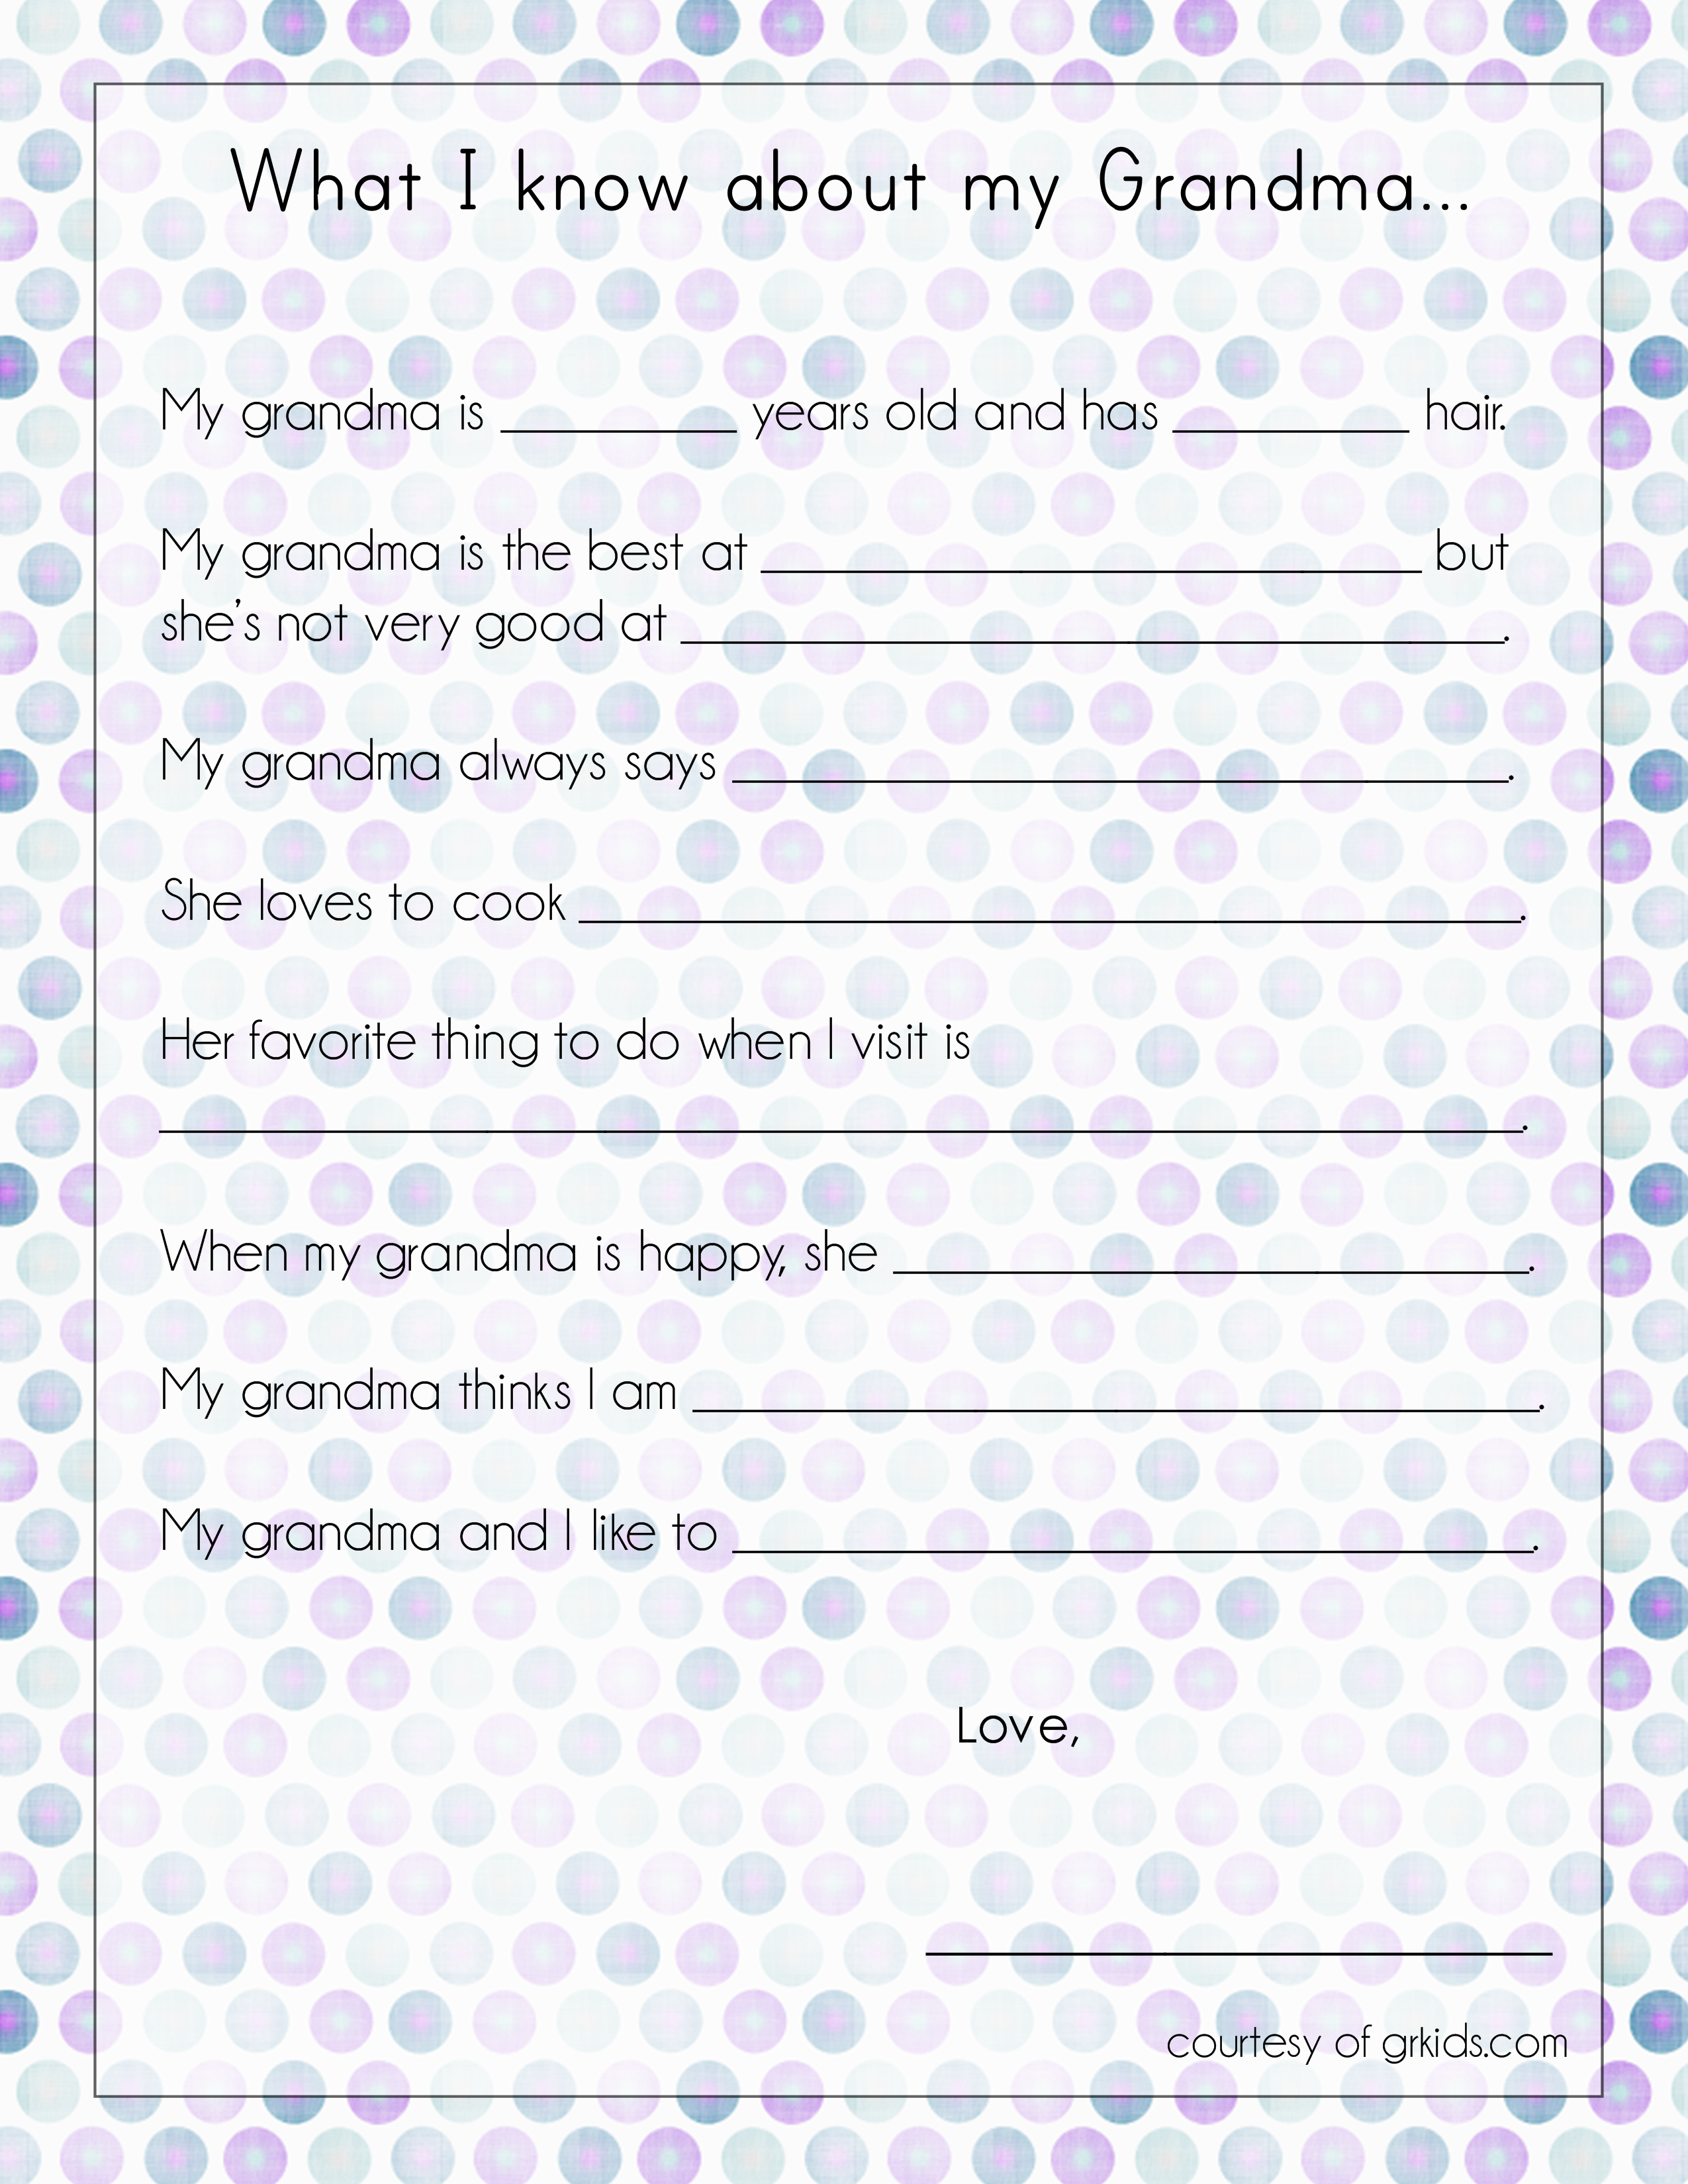 6 Images of Grandma For Mother's Day Printables